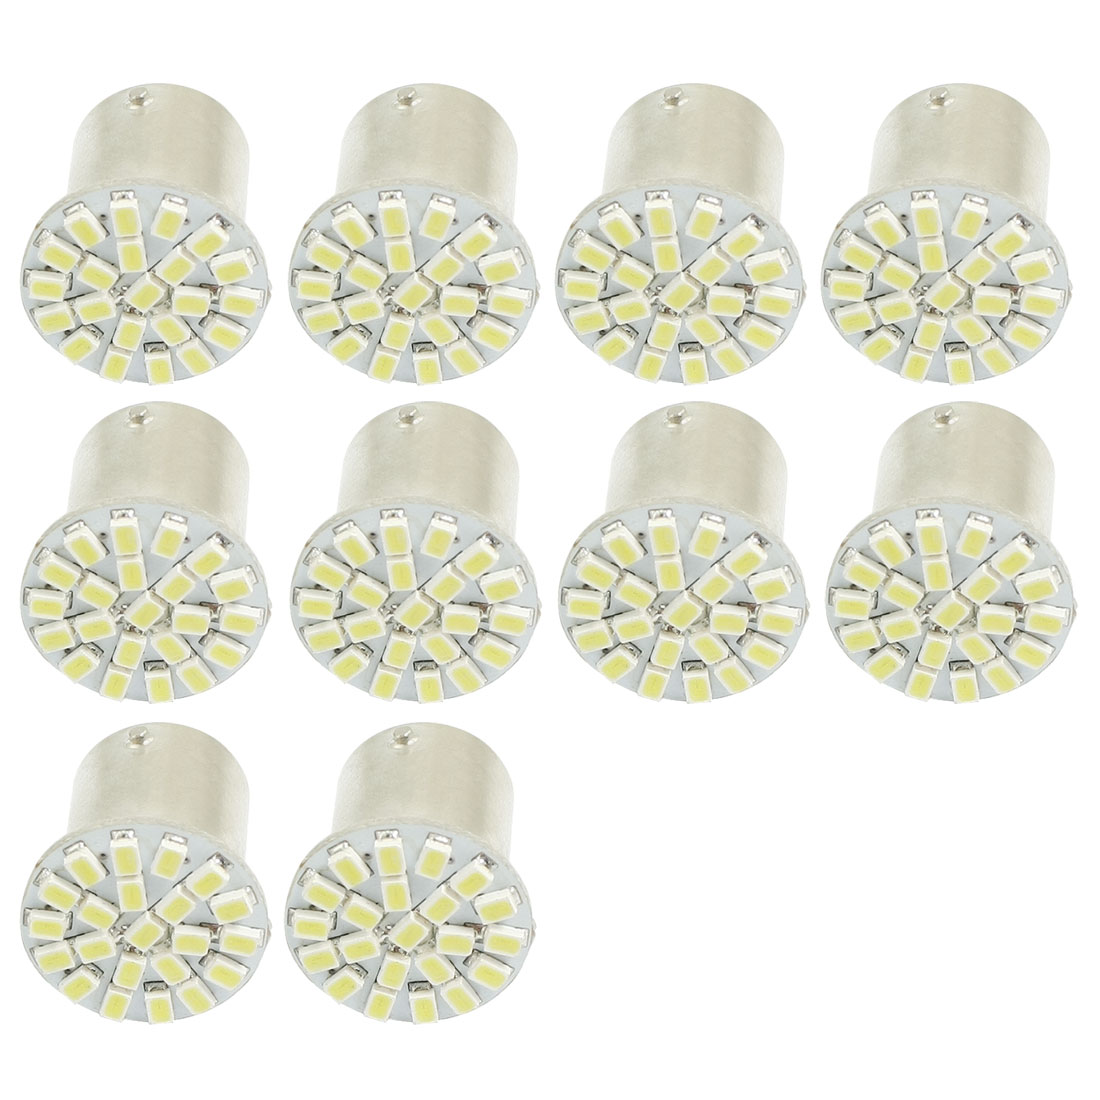 10 Pcs 1157 BAY15D White 22 1206 SMD LED Brake Light Lamp Bulb